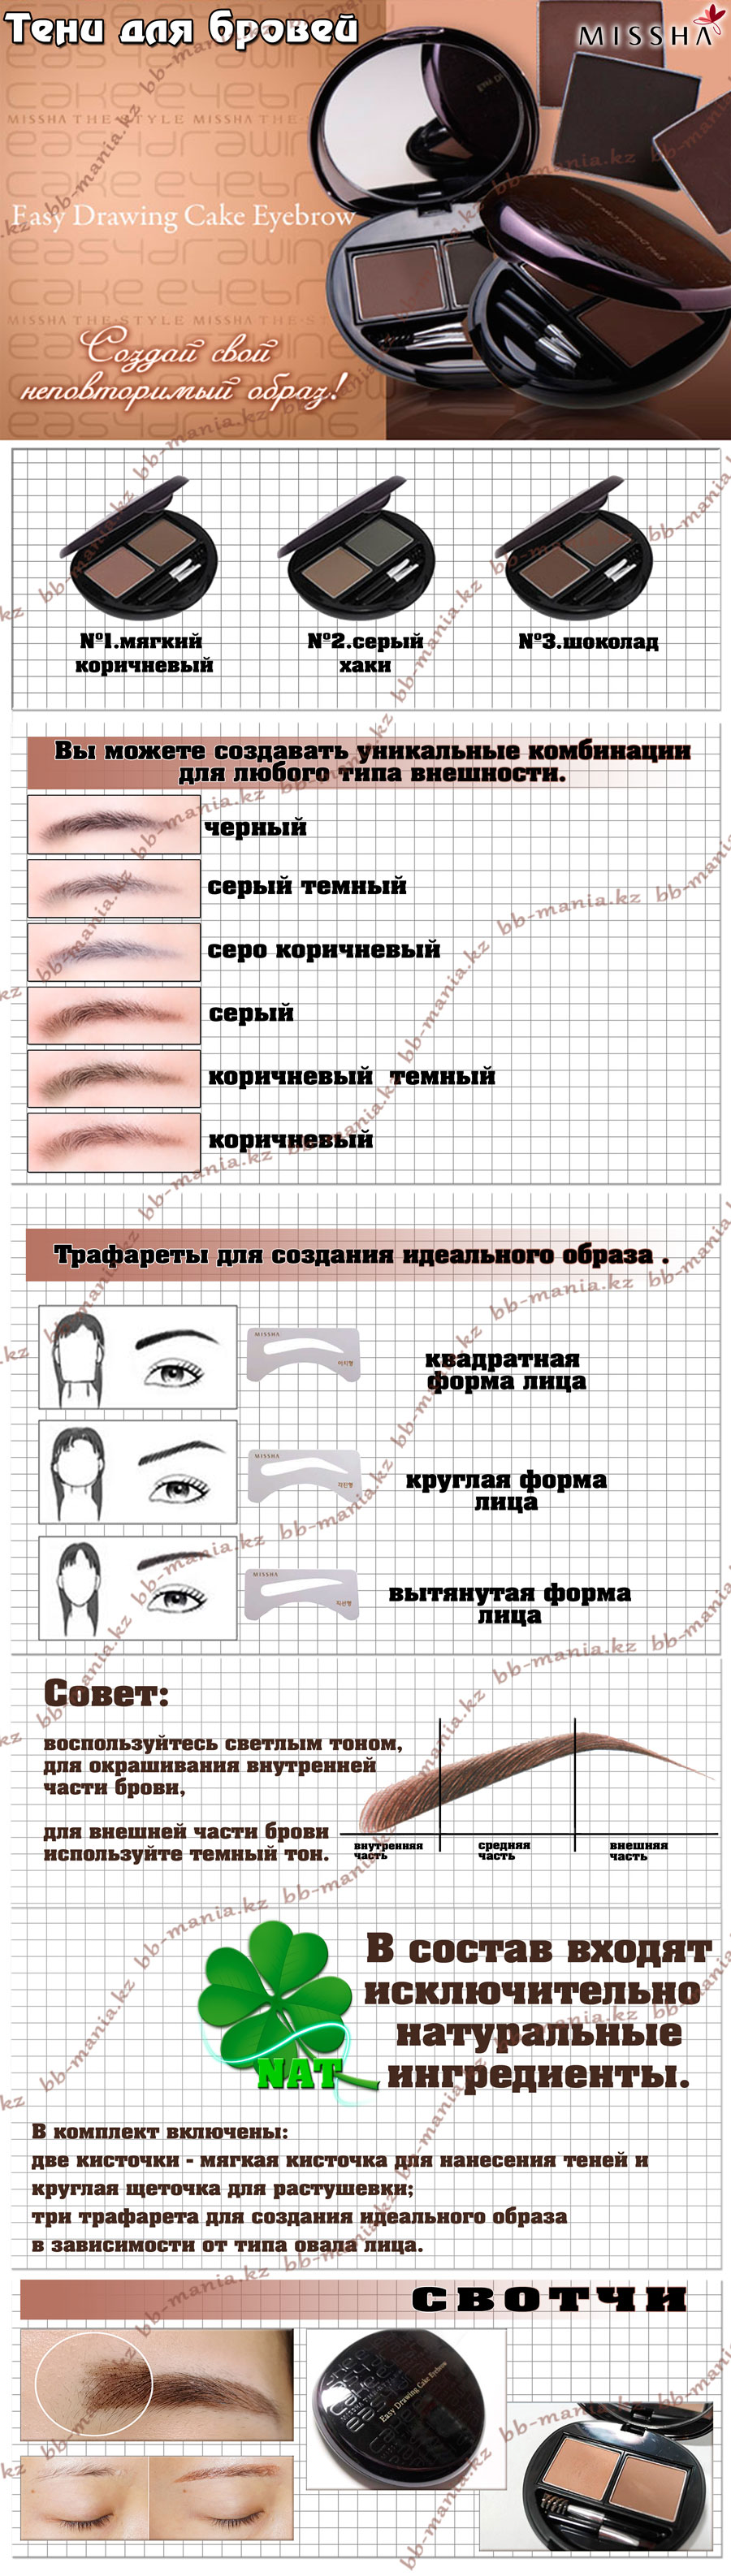 the-style-easy-drawing-cake-eyebrow-min